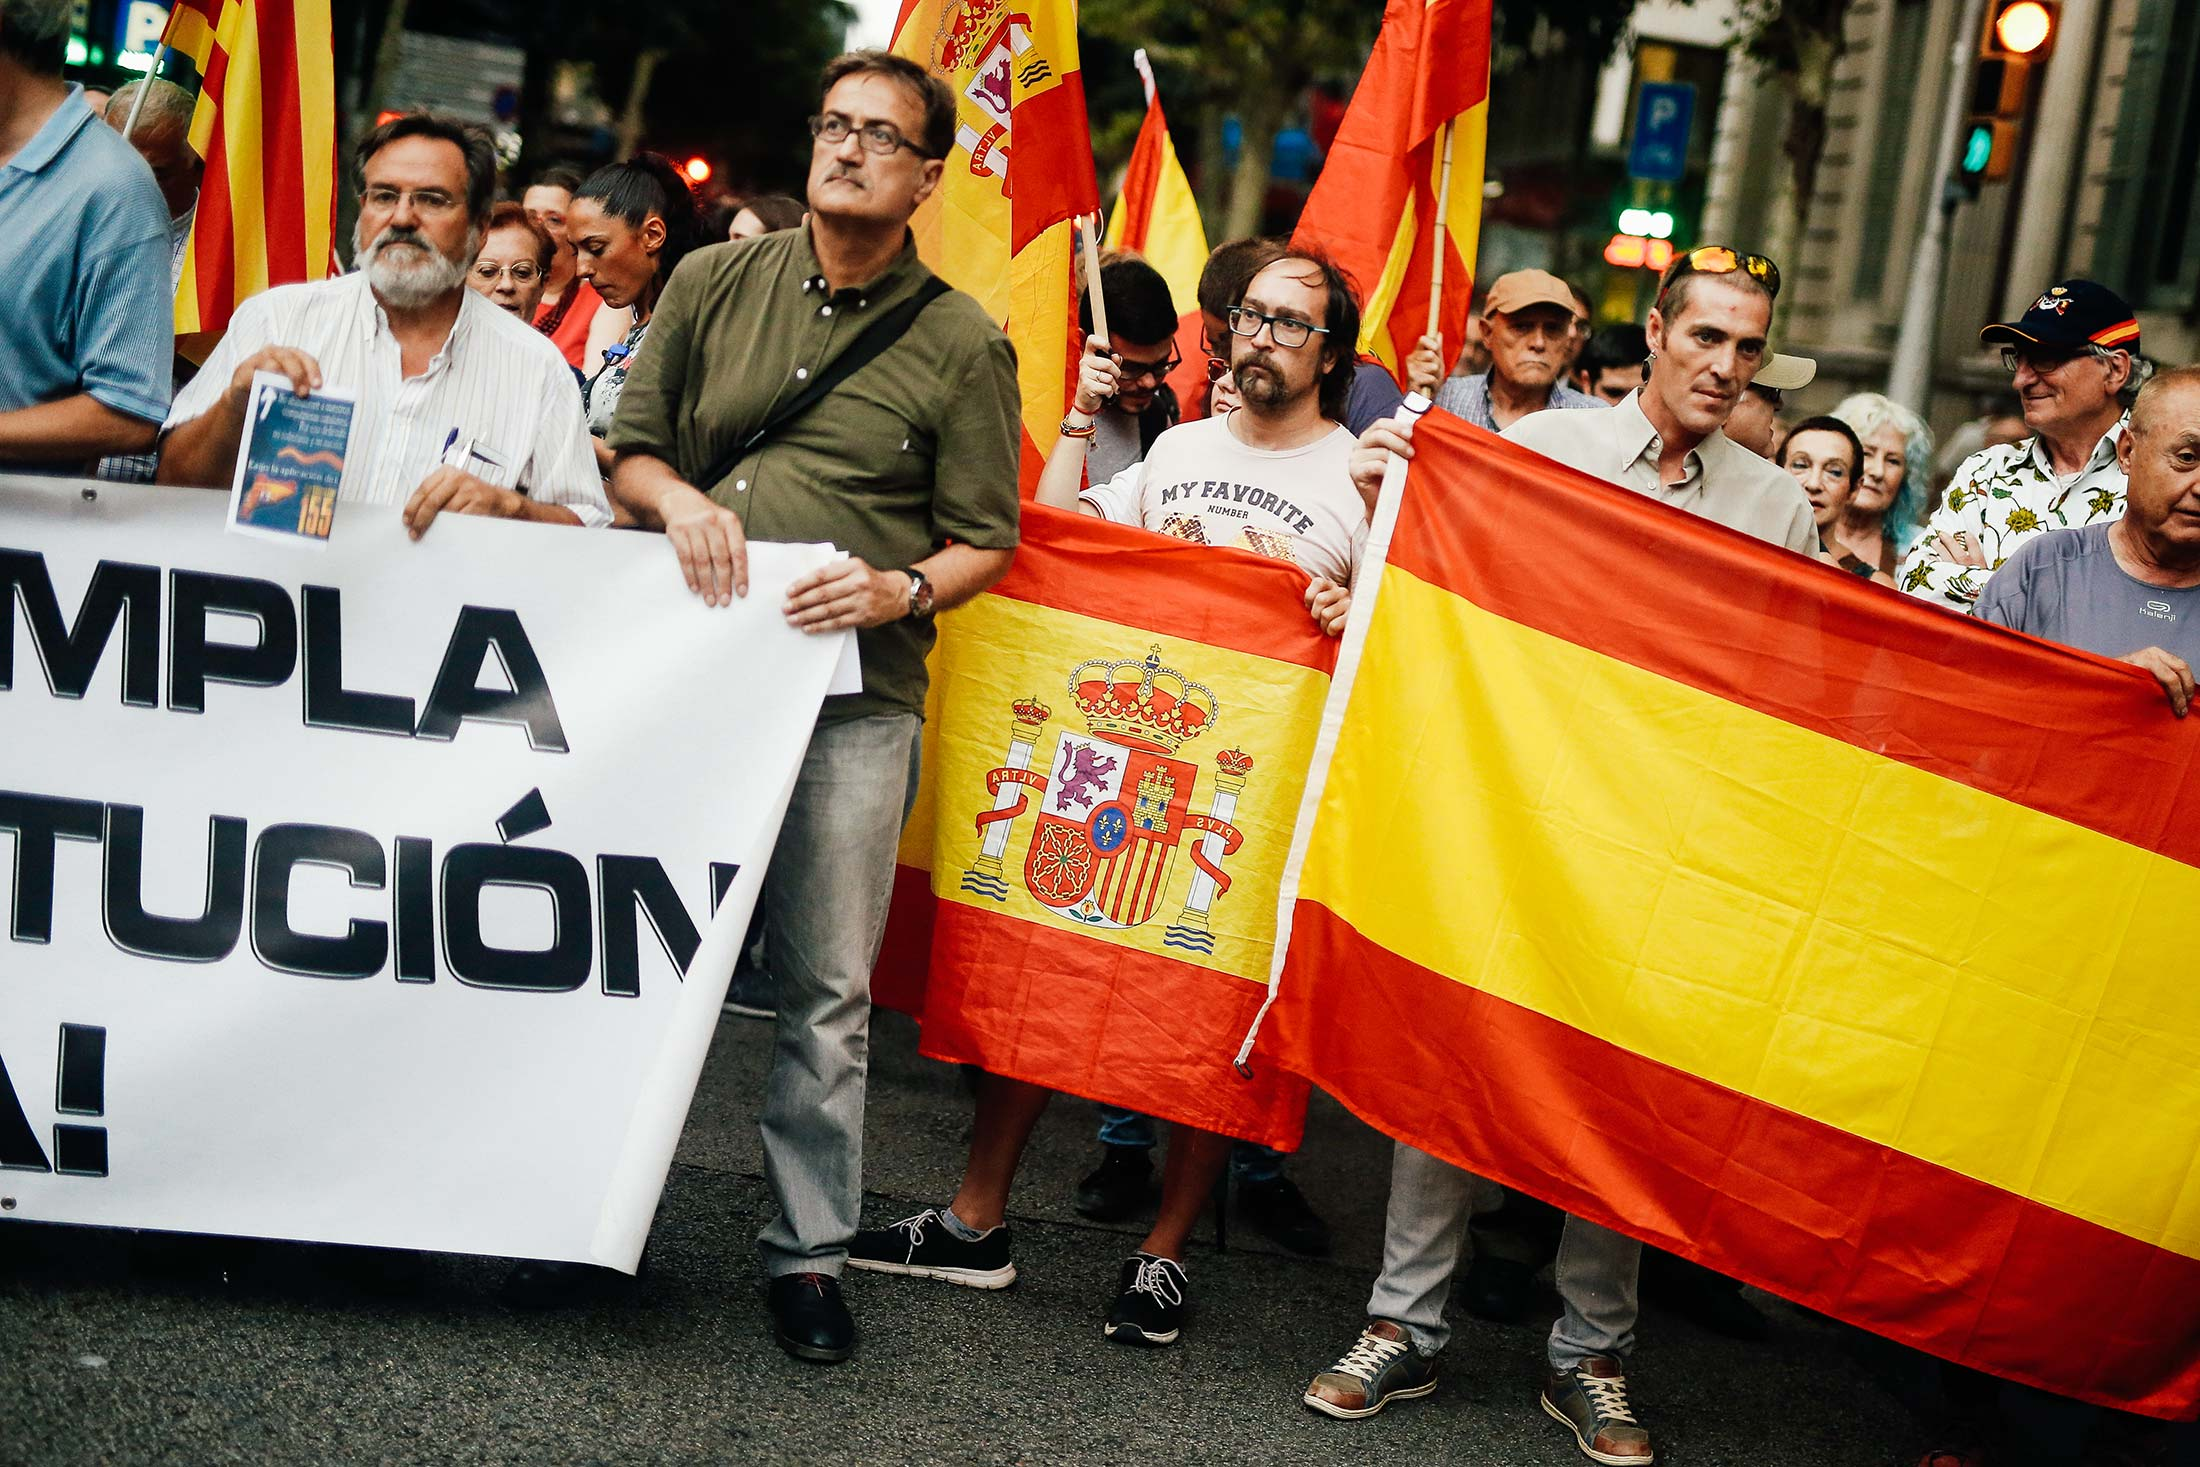 Men hold Spanish flags, signs, and a banner.